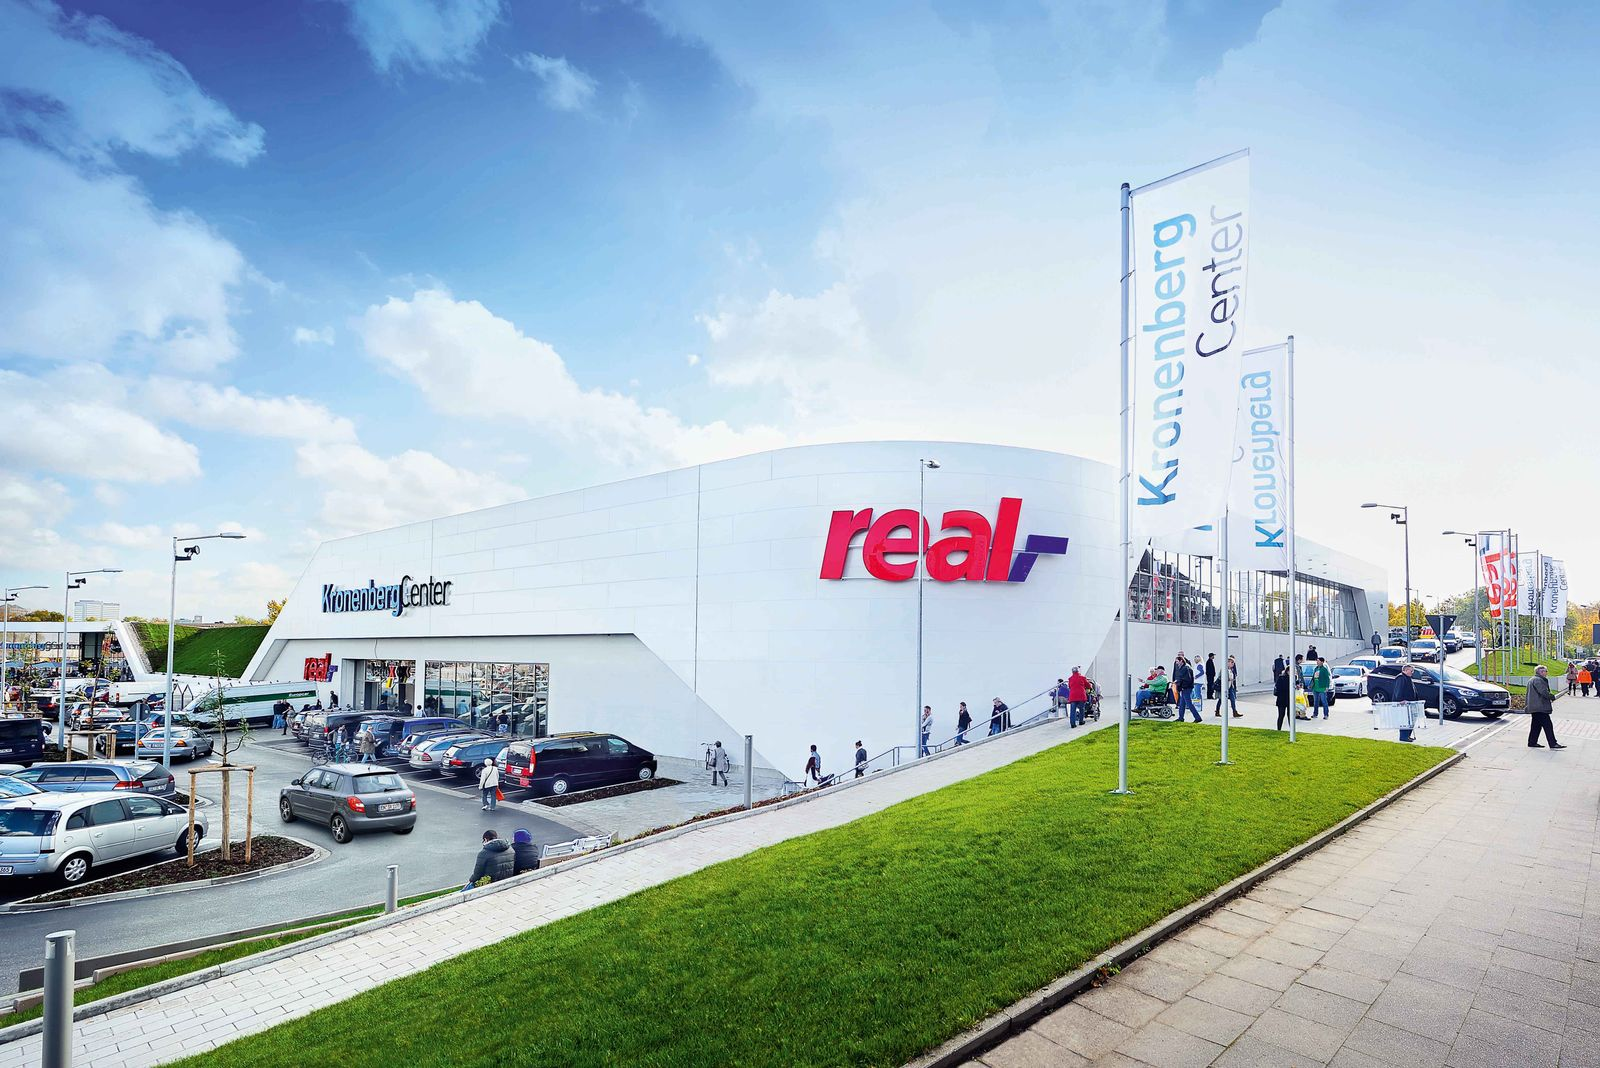 Real / Supermarkt / Lebensmittel